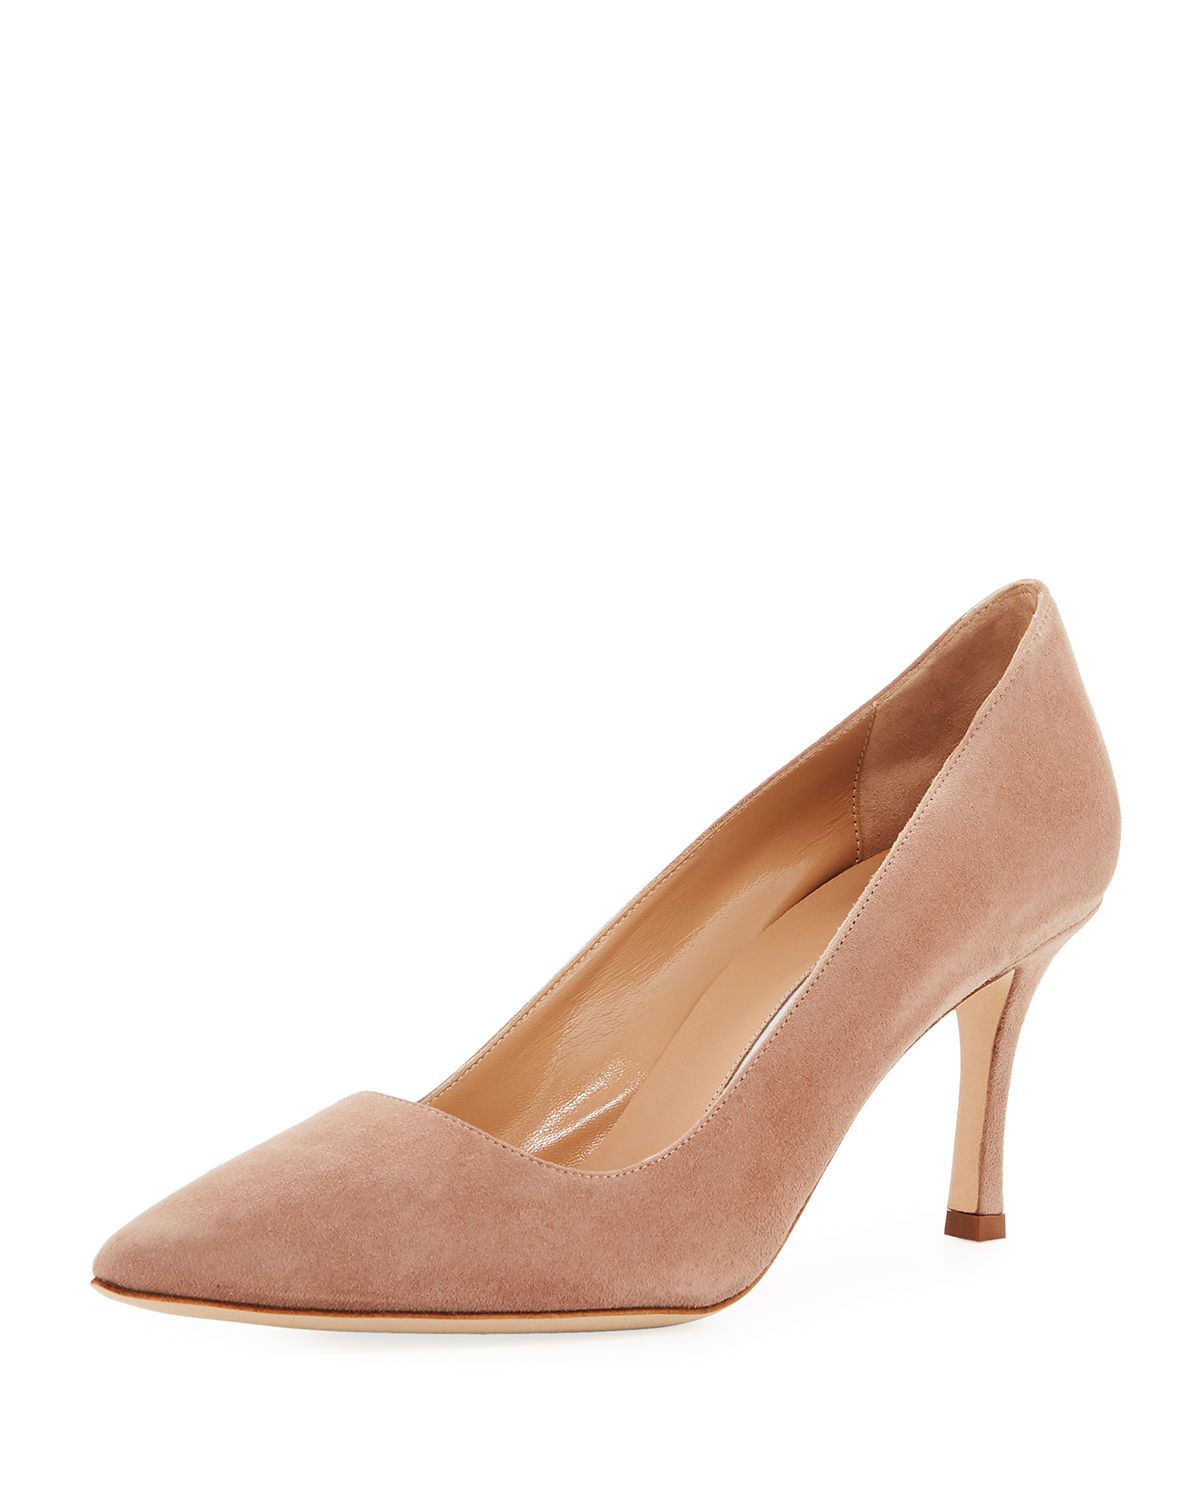 29400190fda Manolo Blahnik Bb Suede 70Mm Pumps